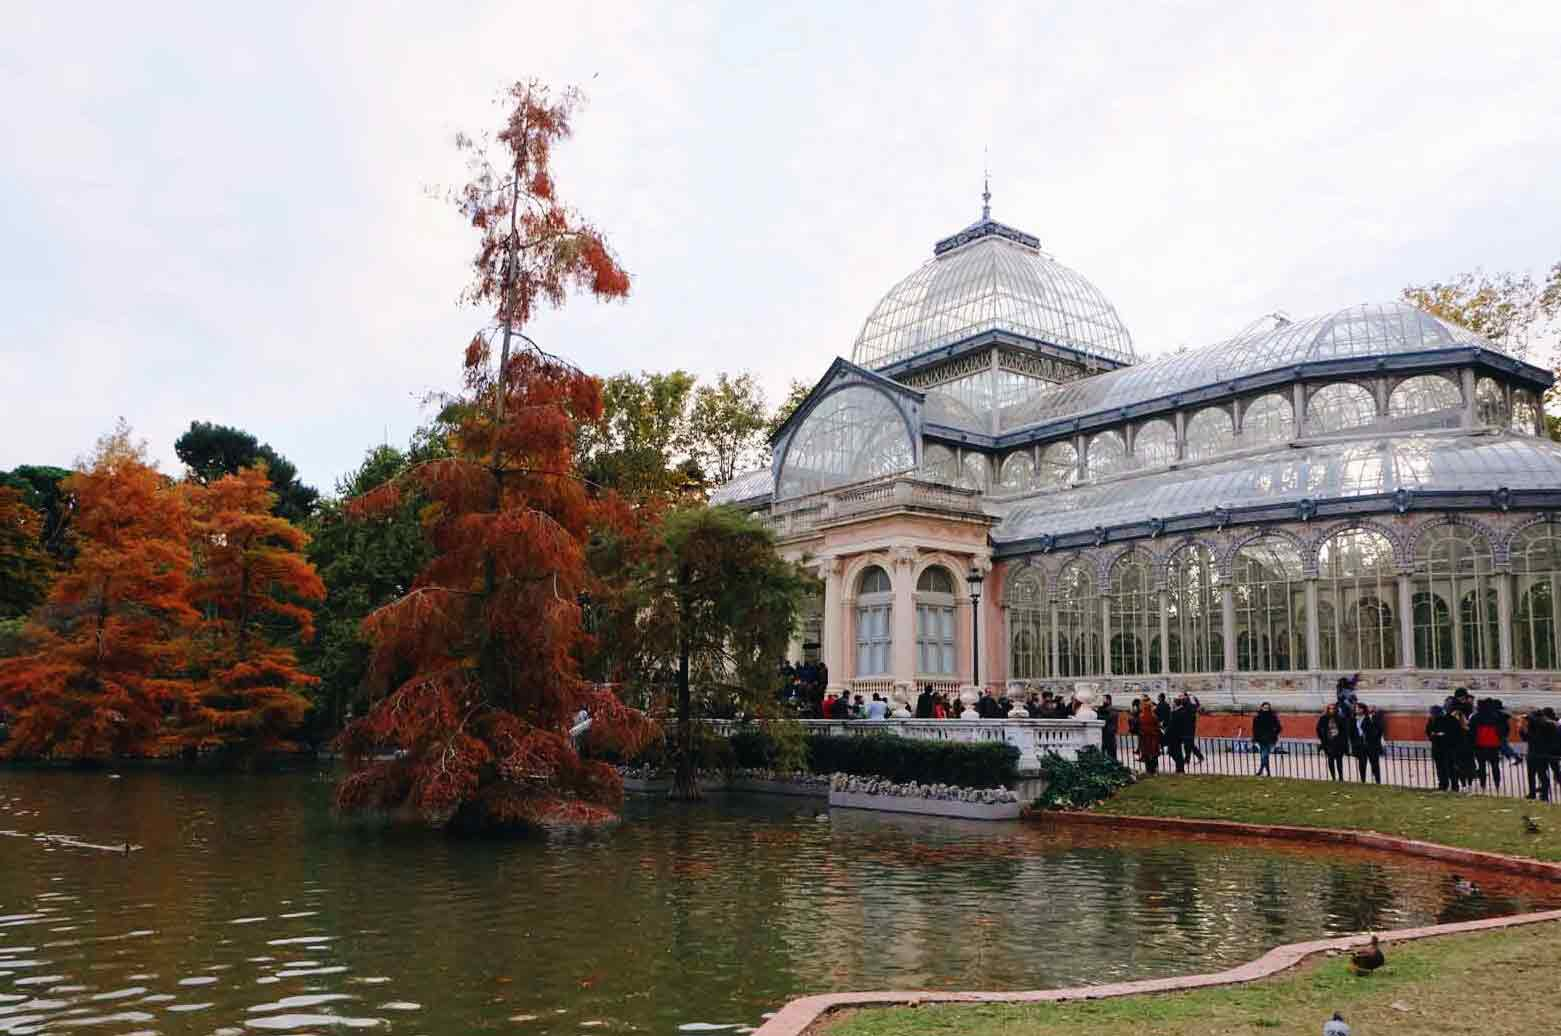 EL RETIRO GETTING DRESSED FOR AUTUMN